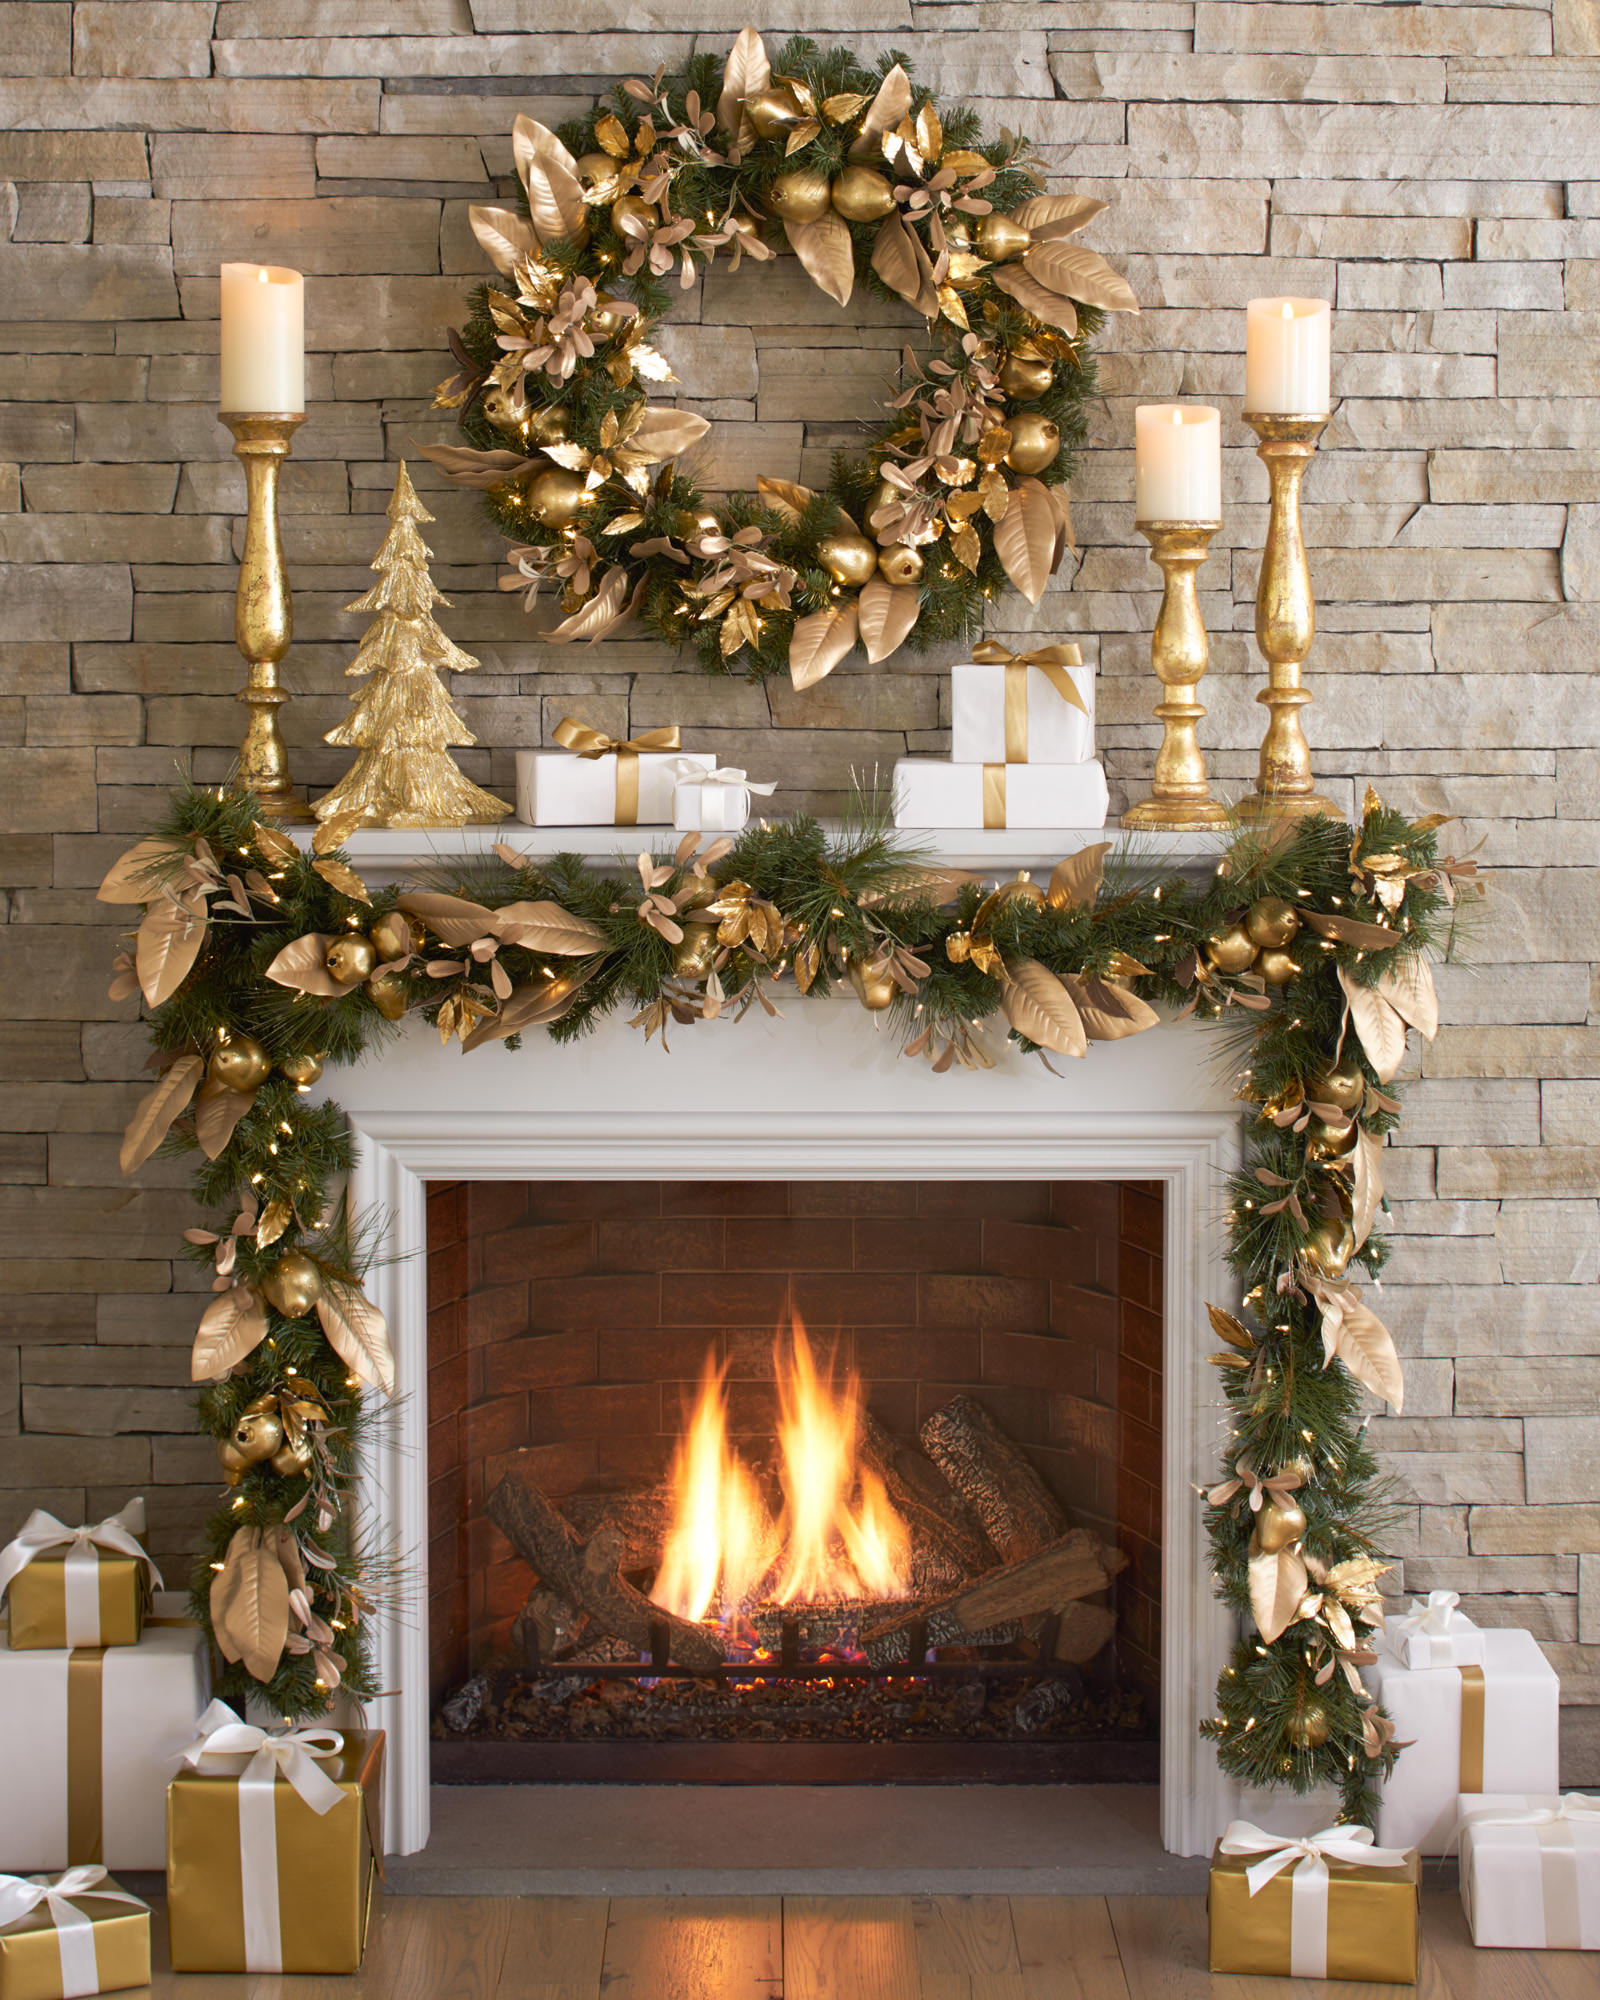 decorate with presents - Christmas Mantel Decorating Ideas Pinterest